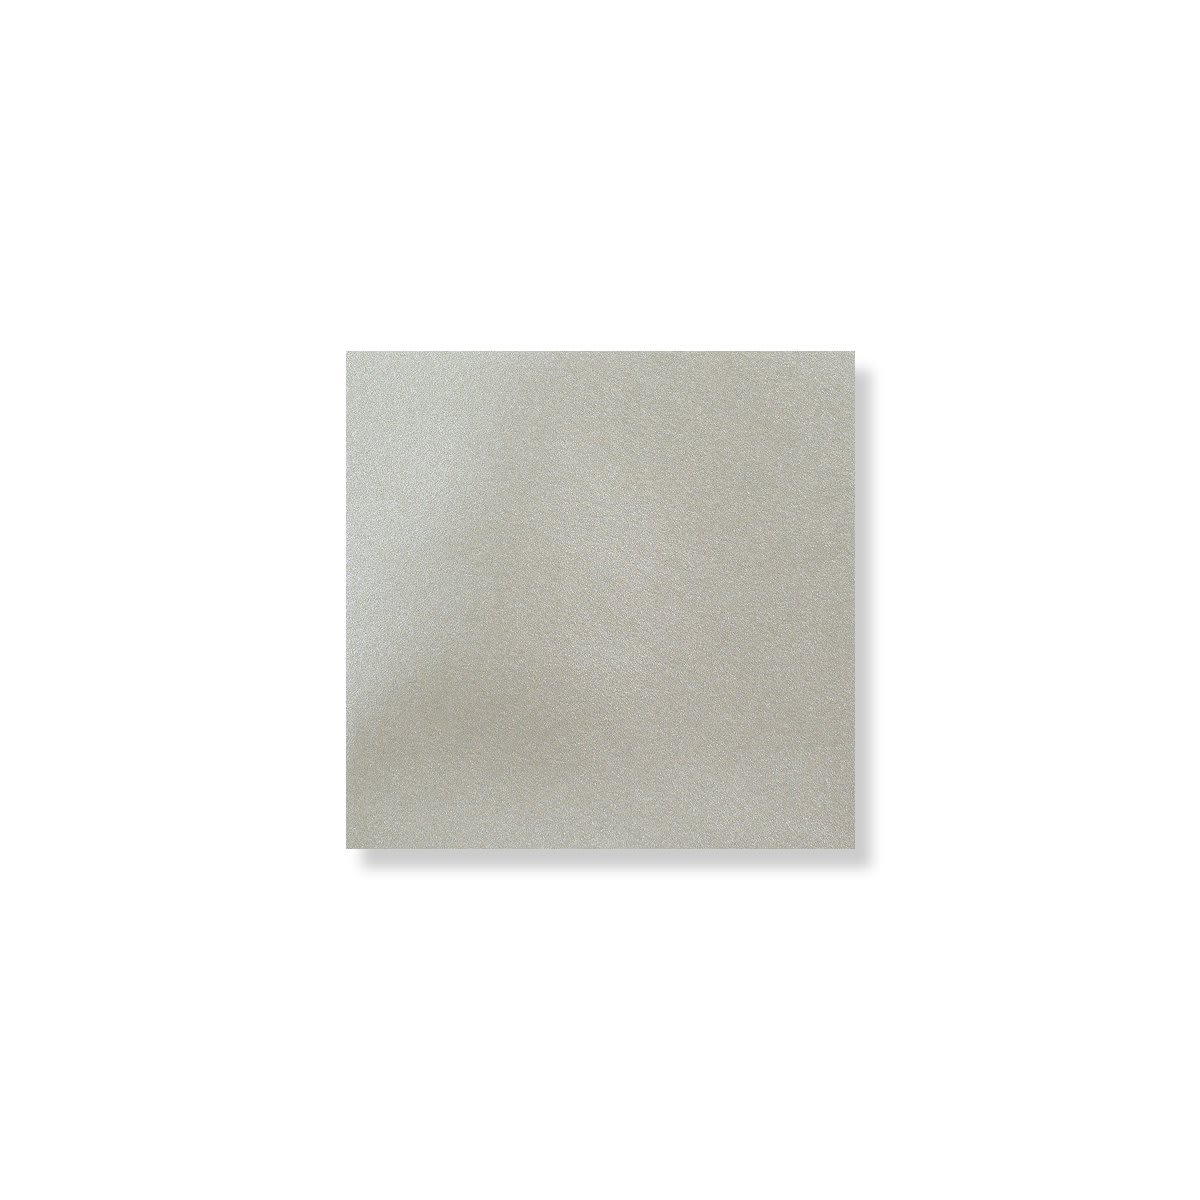 100 x 100MM SILVER PEARLESCENT ENVELOPES